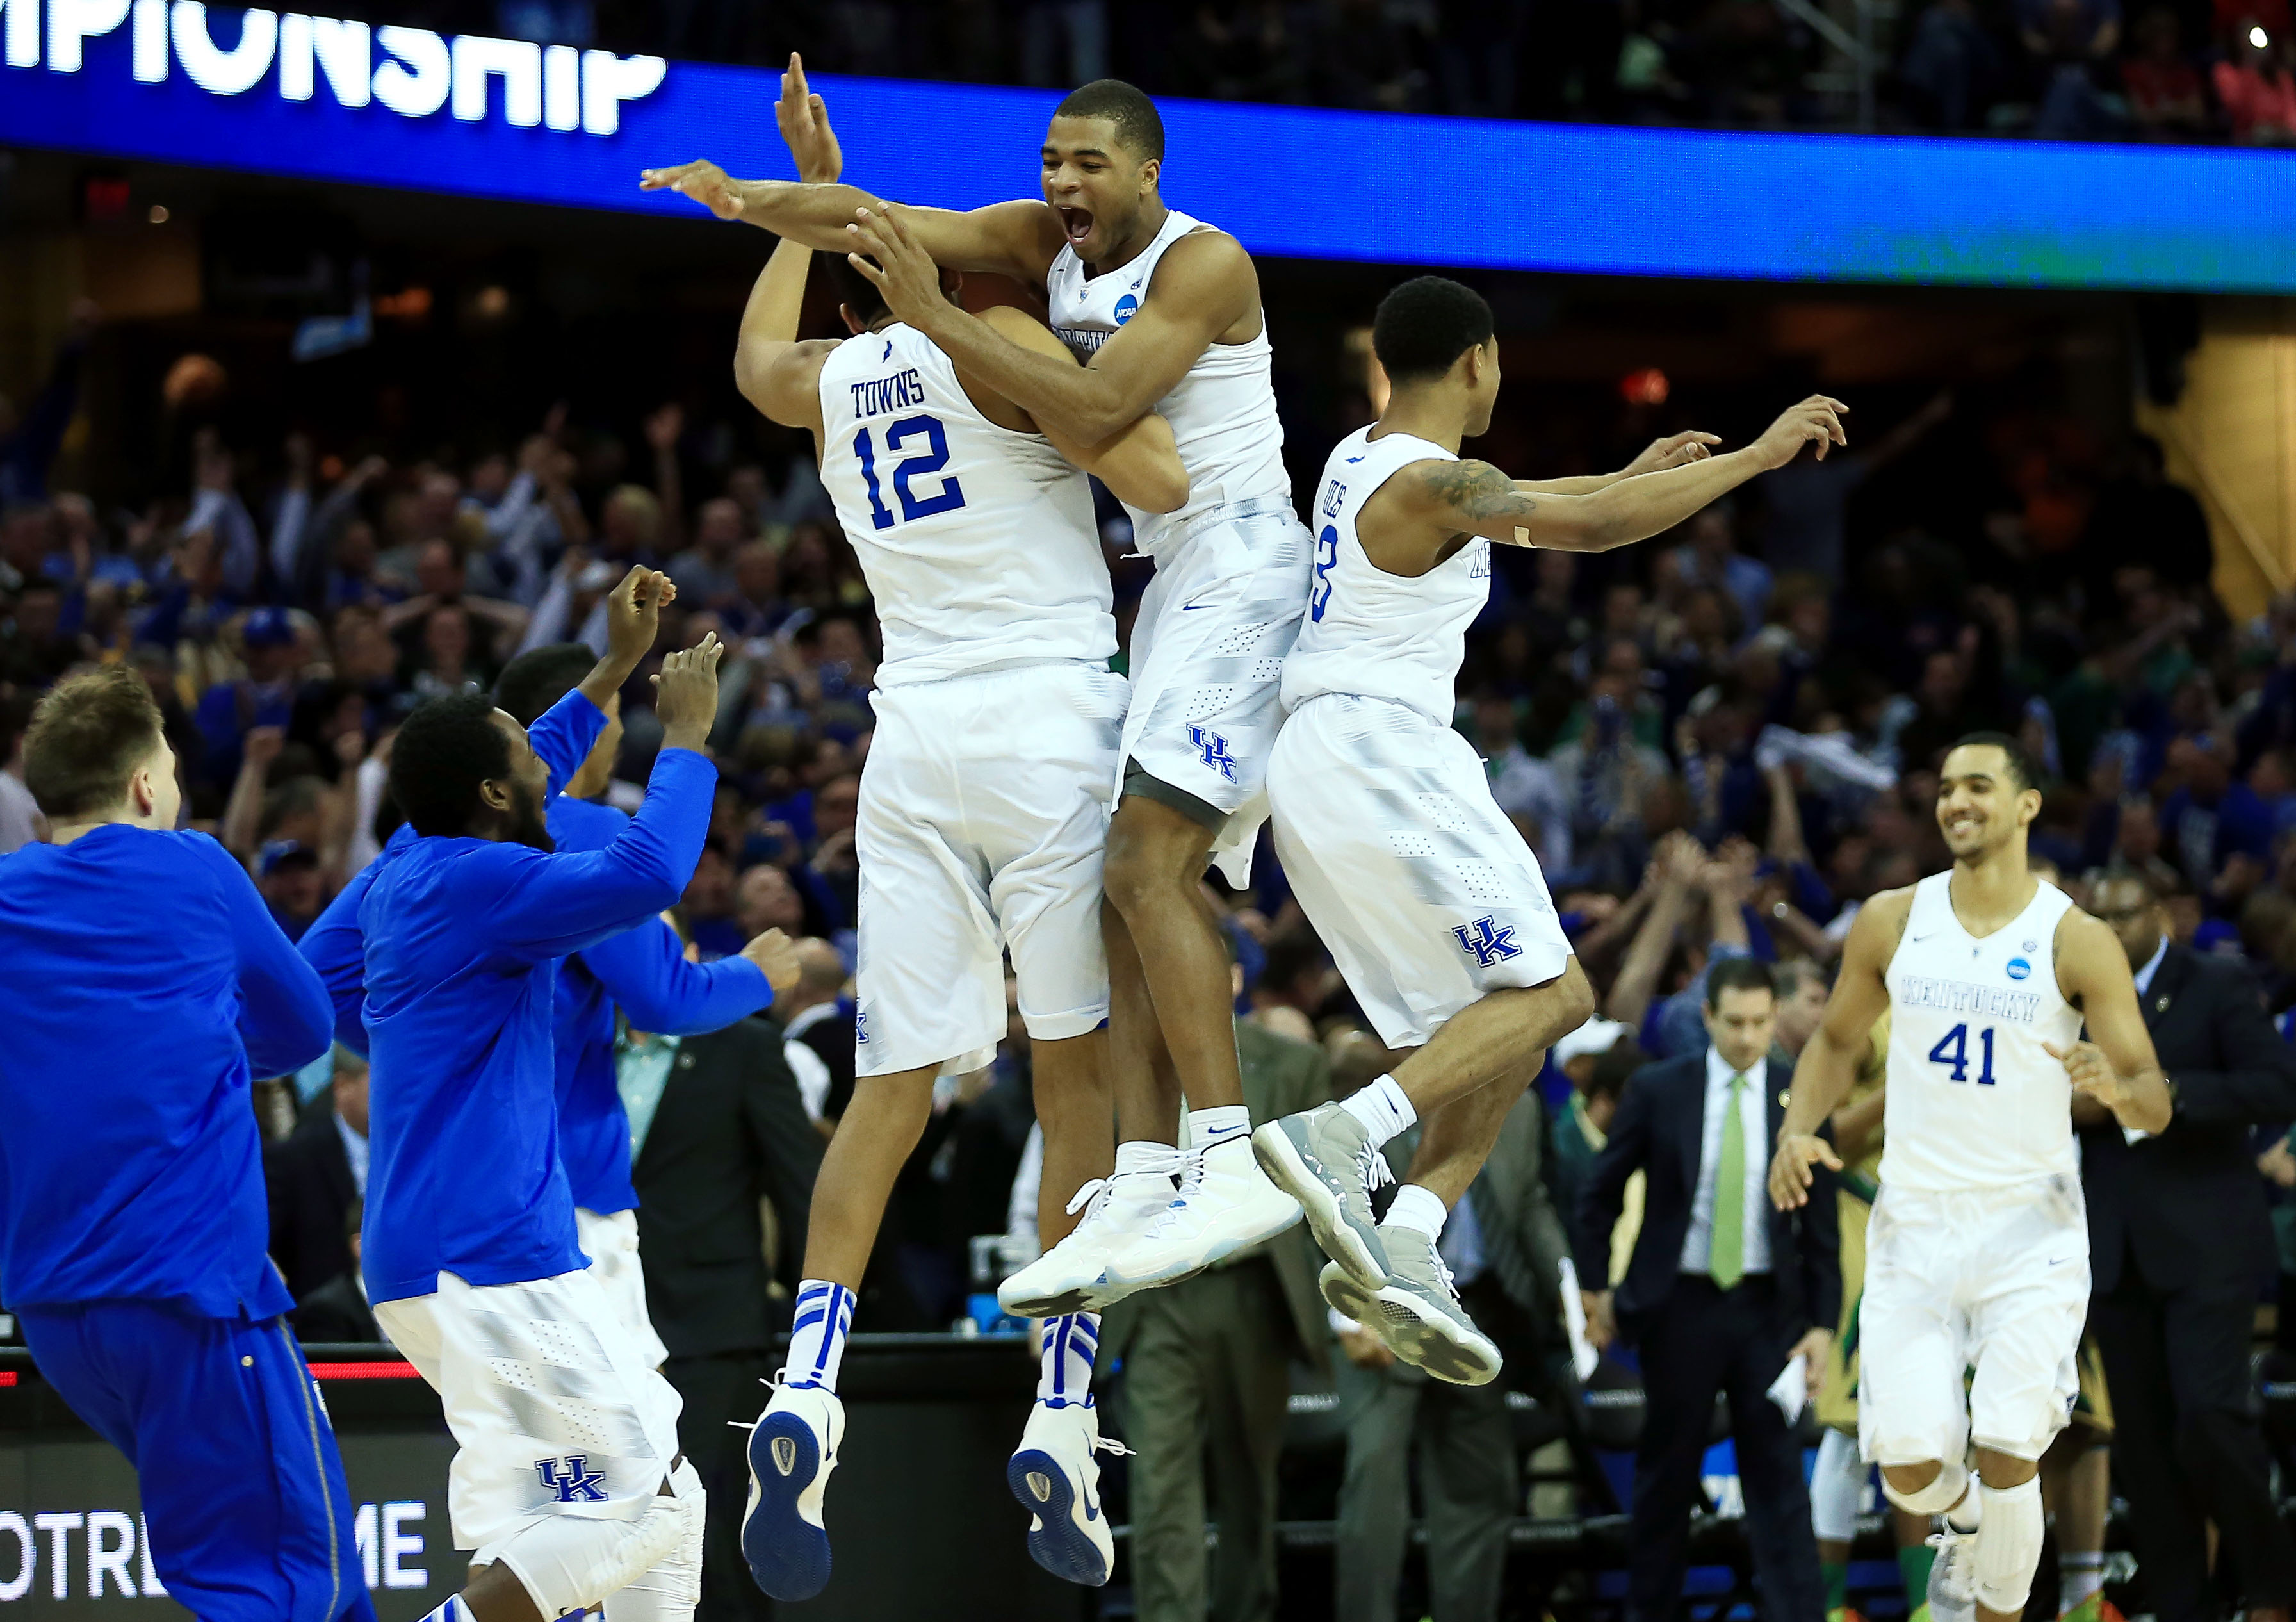 Mar 28, 2015; Cleveland, OH, USA; Kentucky Wildcats forward Karl-Anthony Towns (12) and guard Aaron Harrison (2) and guard Tyler Ulis (3) jump in the air after the game against the Notre Dame Fighting Irish in the finals of the midwest regional of the 2015 NCAA Tournament at Quicken Loans Arena. Kentucky won 68-66. Mandatory Credit: Andrew Weber-USA TODAY Sports